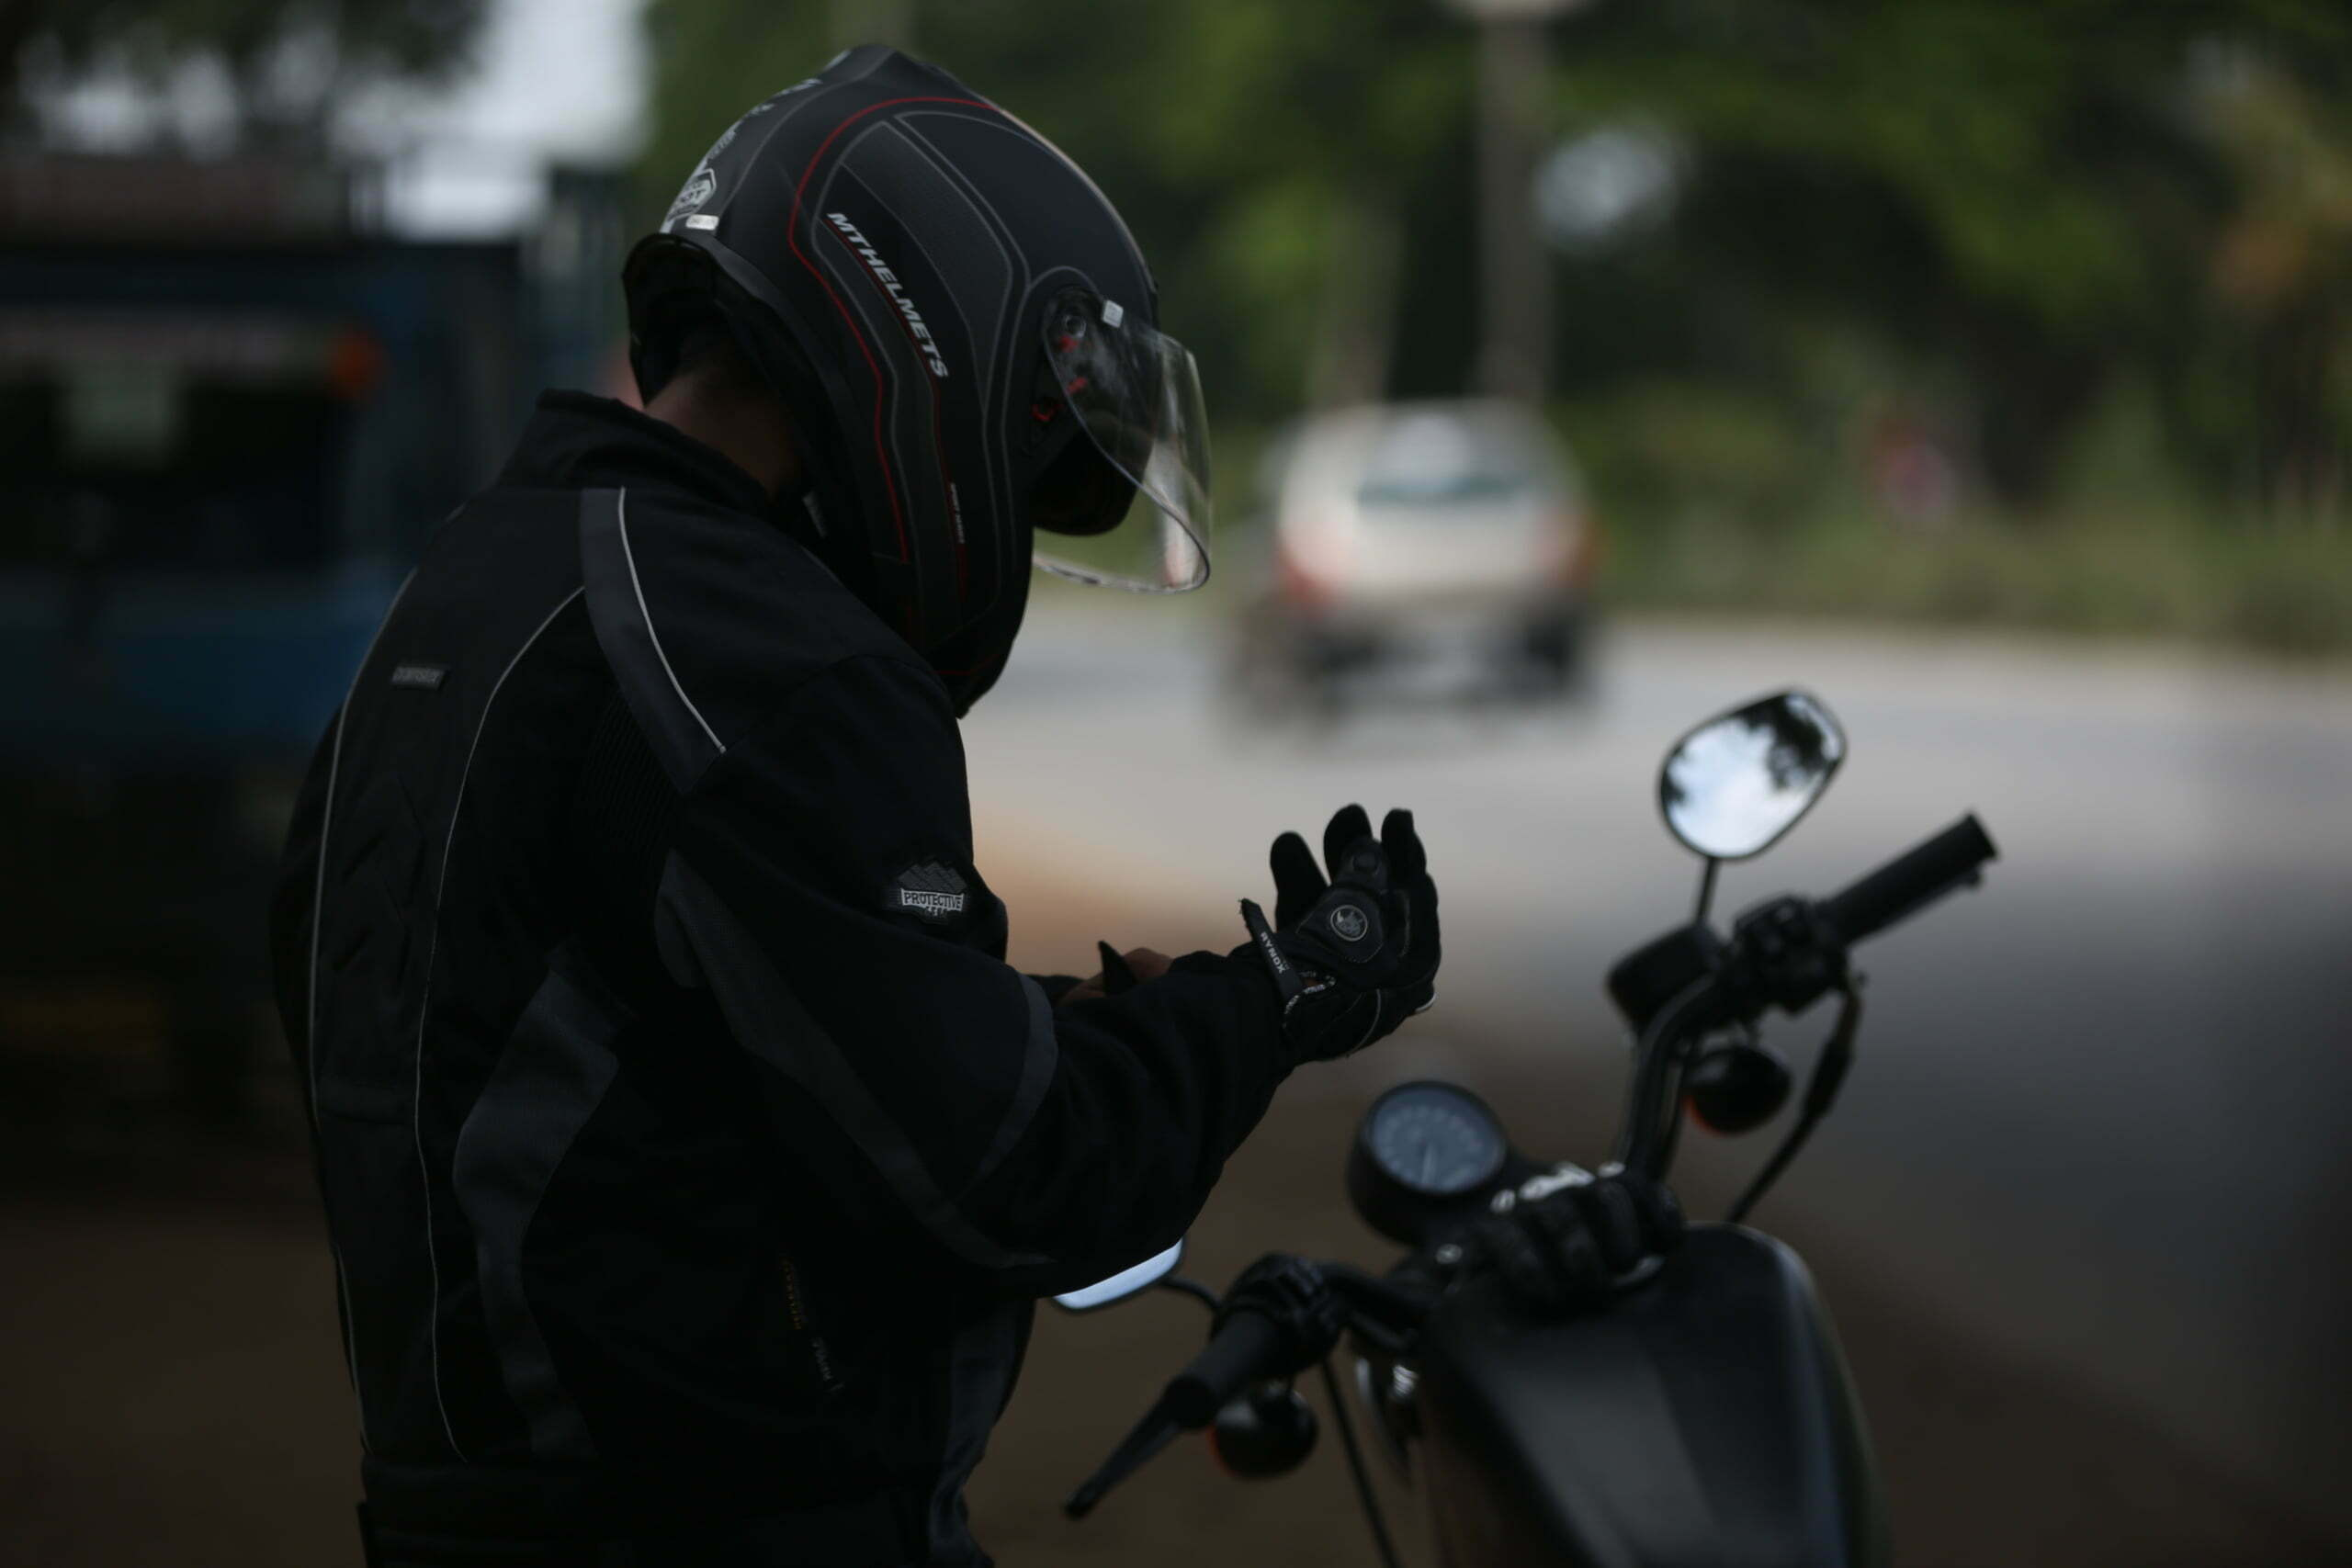 motorcyclist-on-side-of-the-road